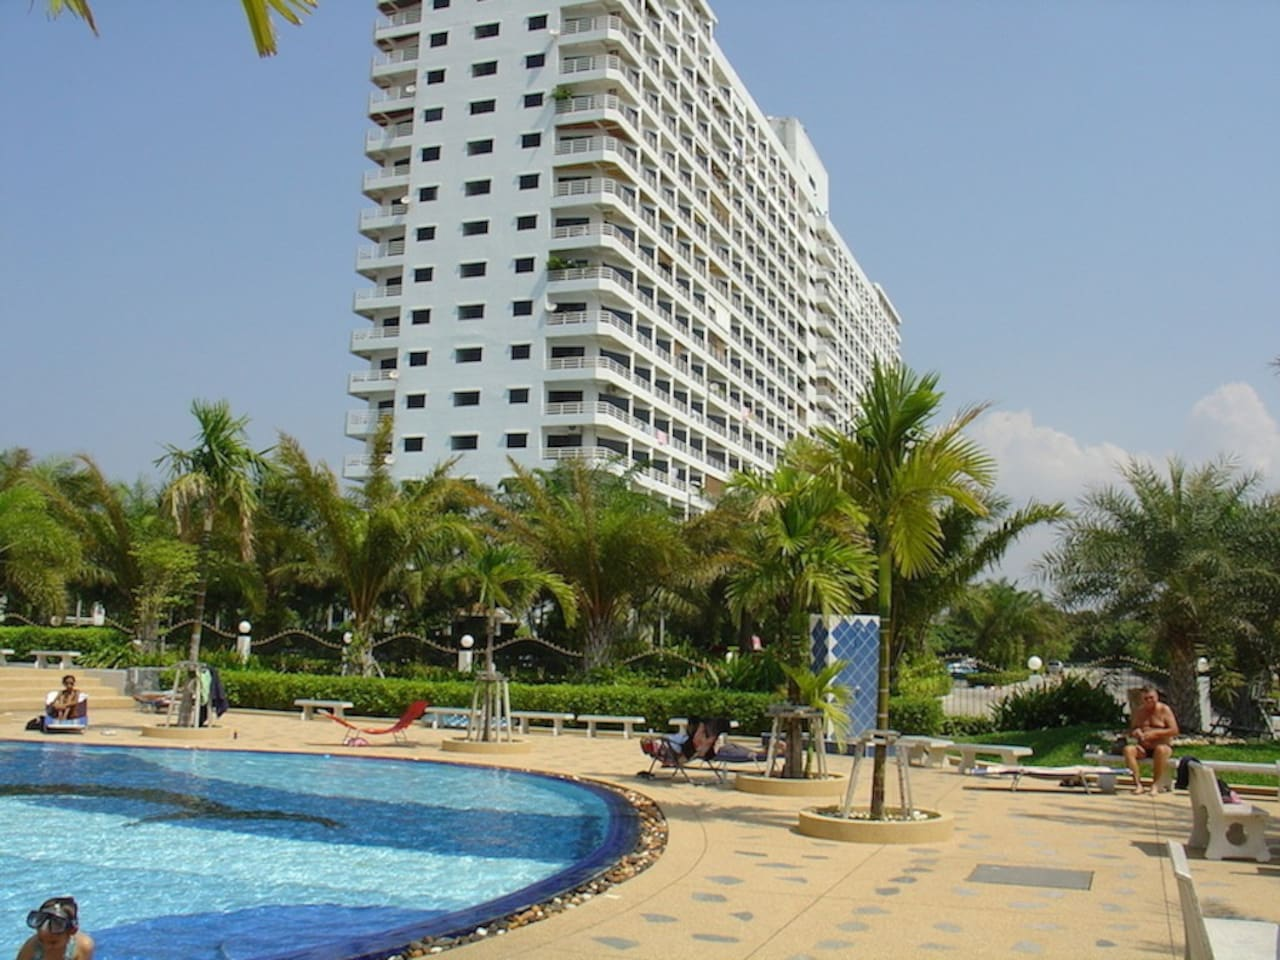 Modern 18 floor condo only 500m from the beach with beautiful swimming pool and 24 hour security controlled large parking areas for cars and motorbikes.